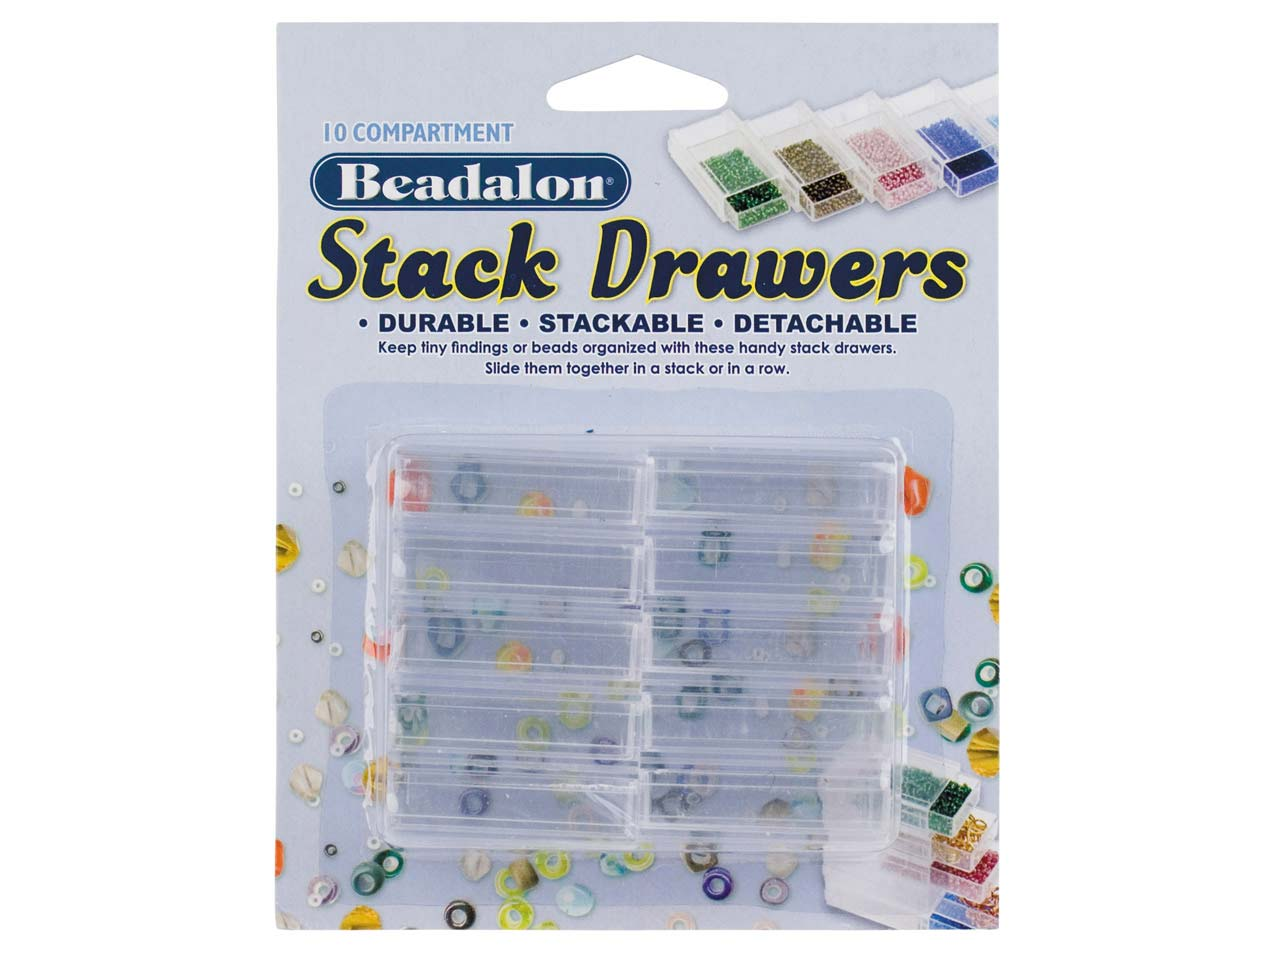 Beadalon Bead Storage Stack DrawersPack of 10